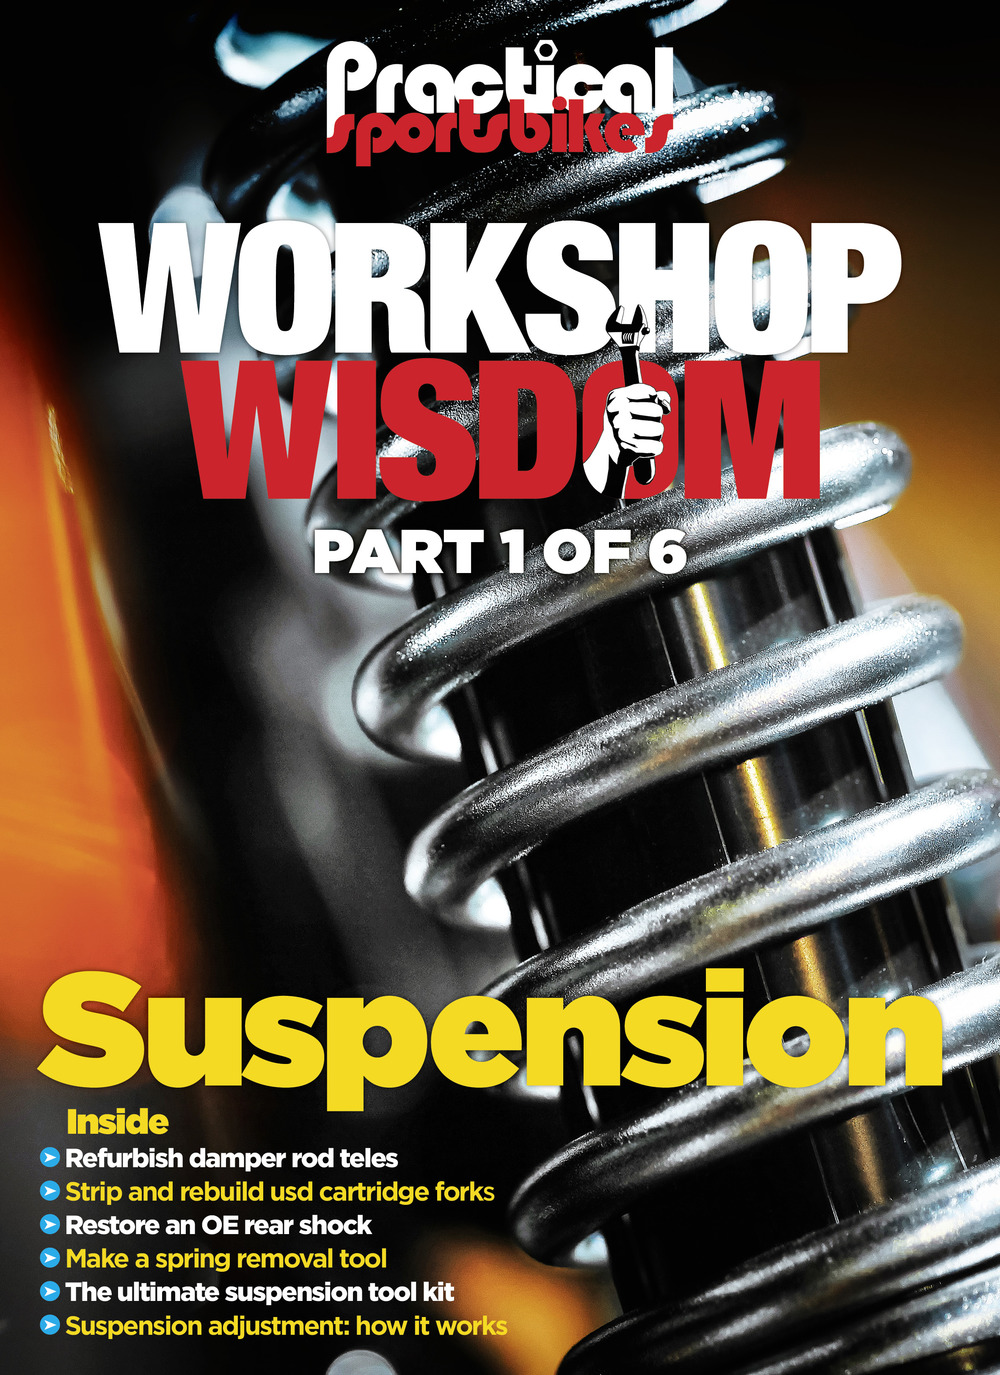 Workshop Wisdom issue 1: Suspension